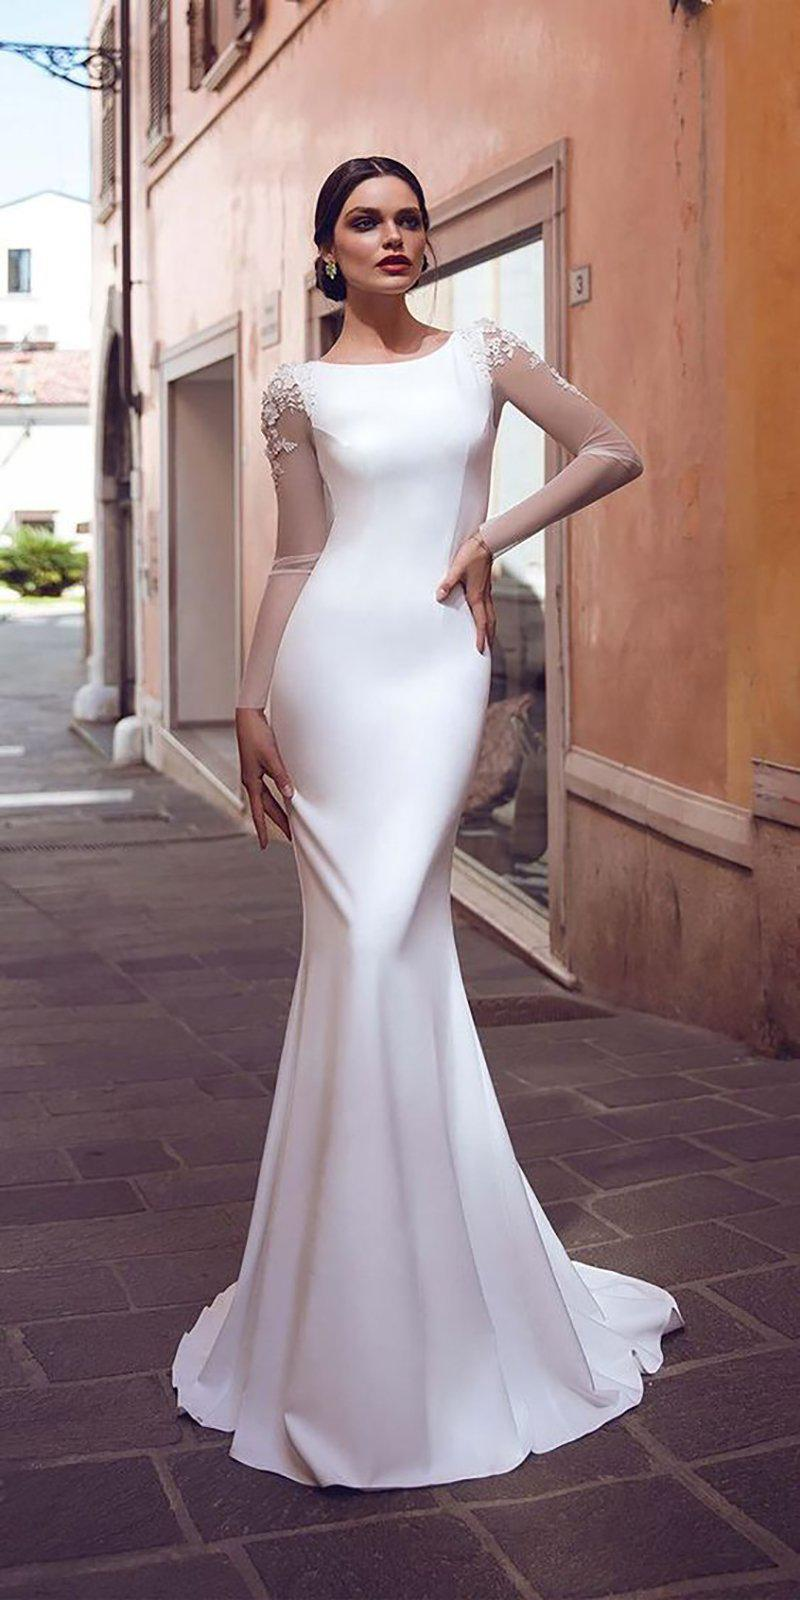 Long Sleeve Satin Mermaid Wedding Dress with Illusion and Lace Appliques - Mr. & Mrs. Tomorrow